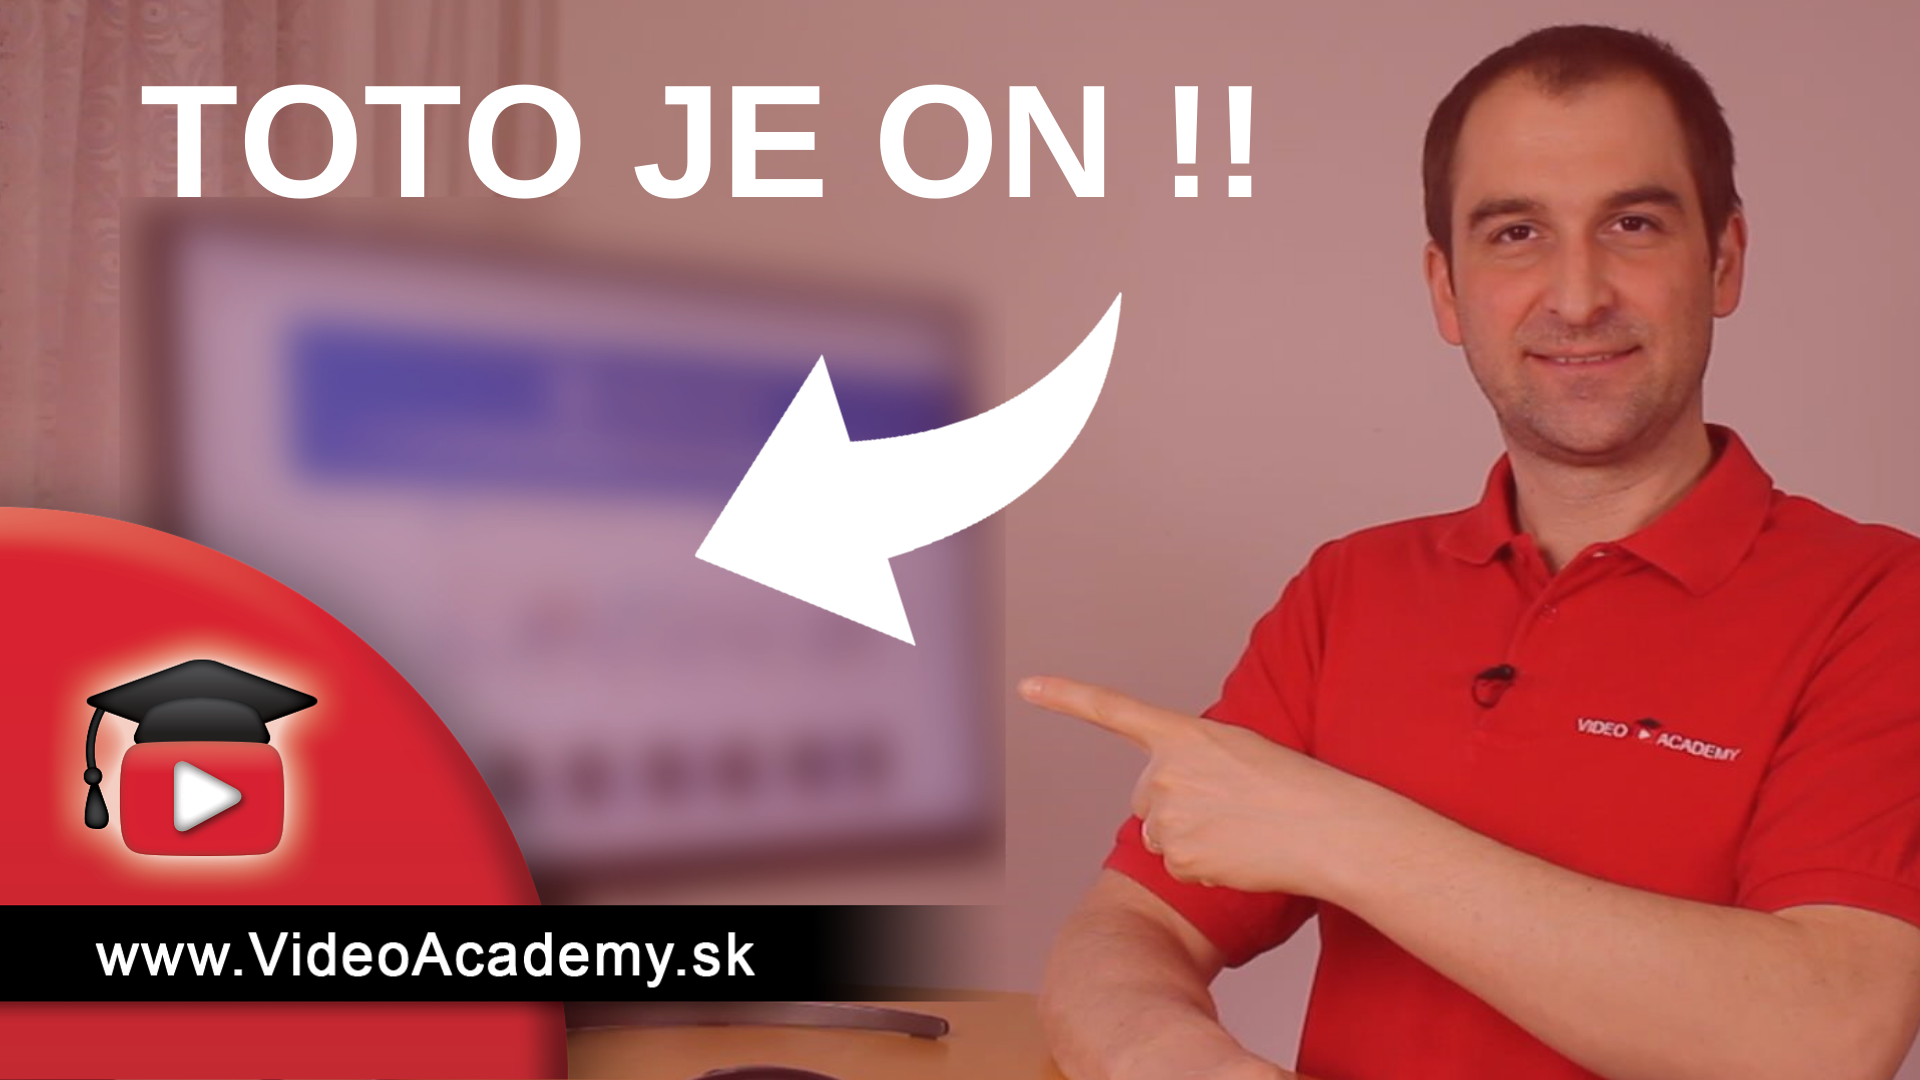 VIDEO ACADEMY - Globalny YouTube kanal